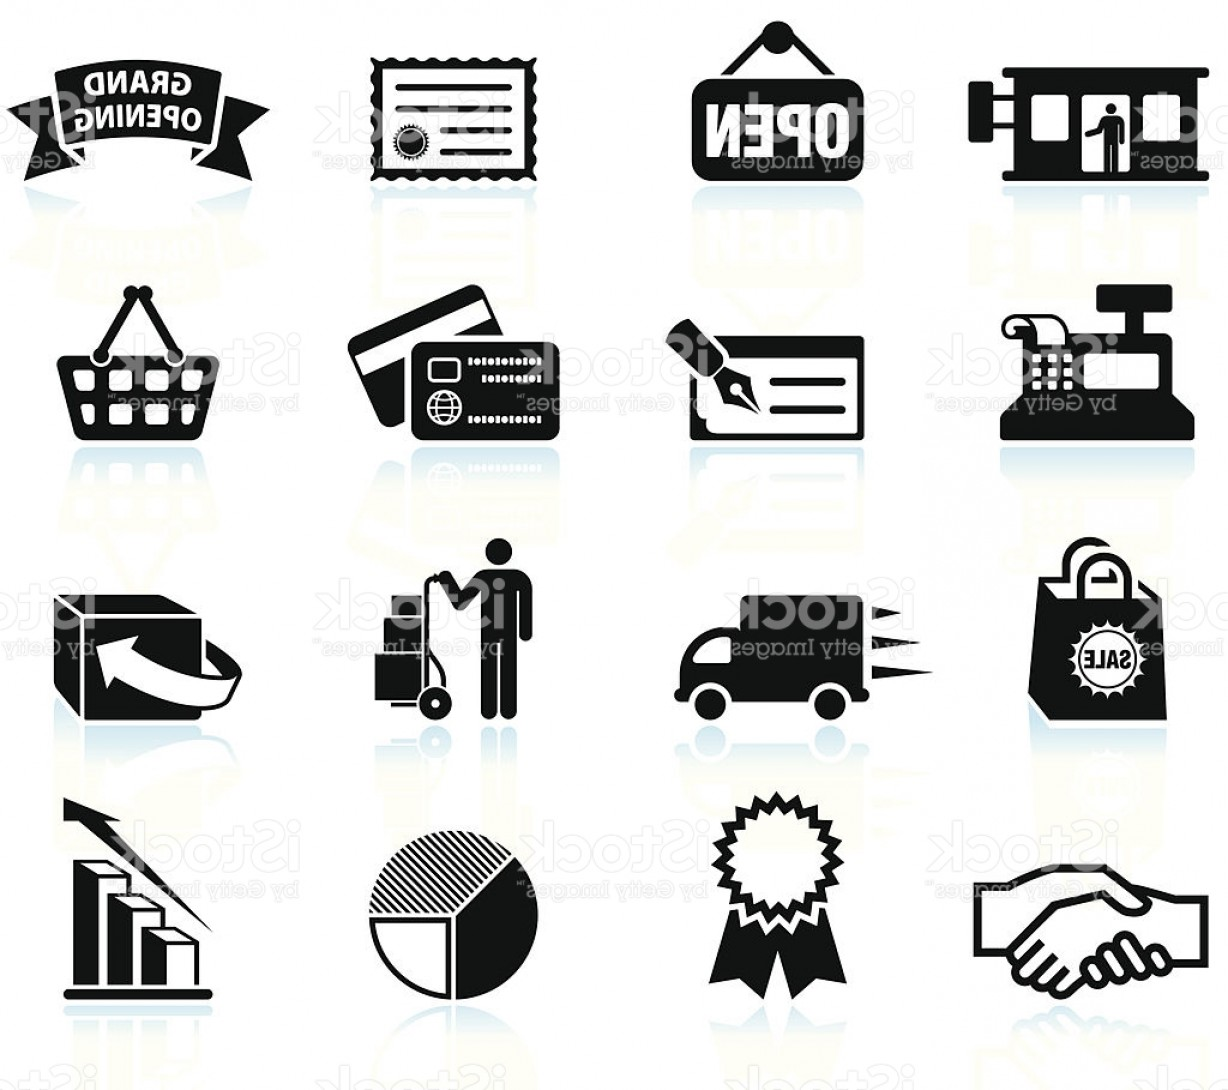 1228x1090 Small Business Black White Royalty Free Vector Icon Set Gm Lazttweet